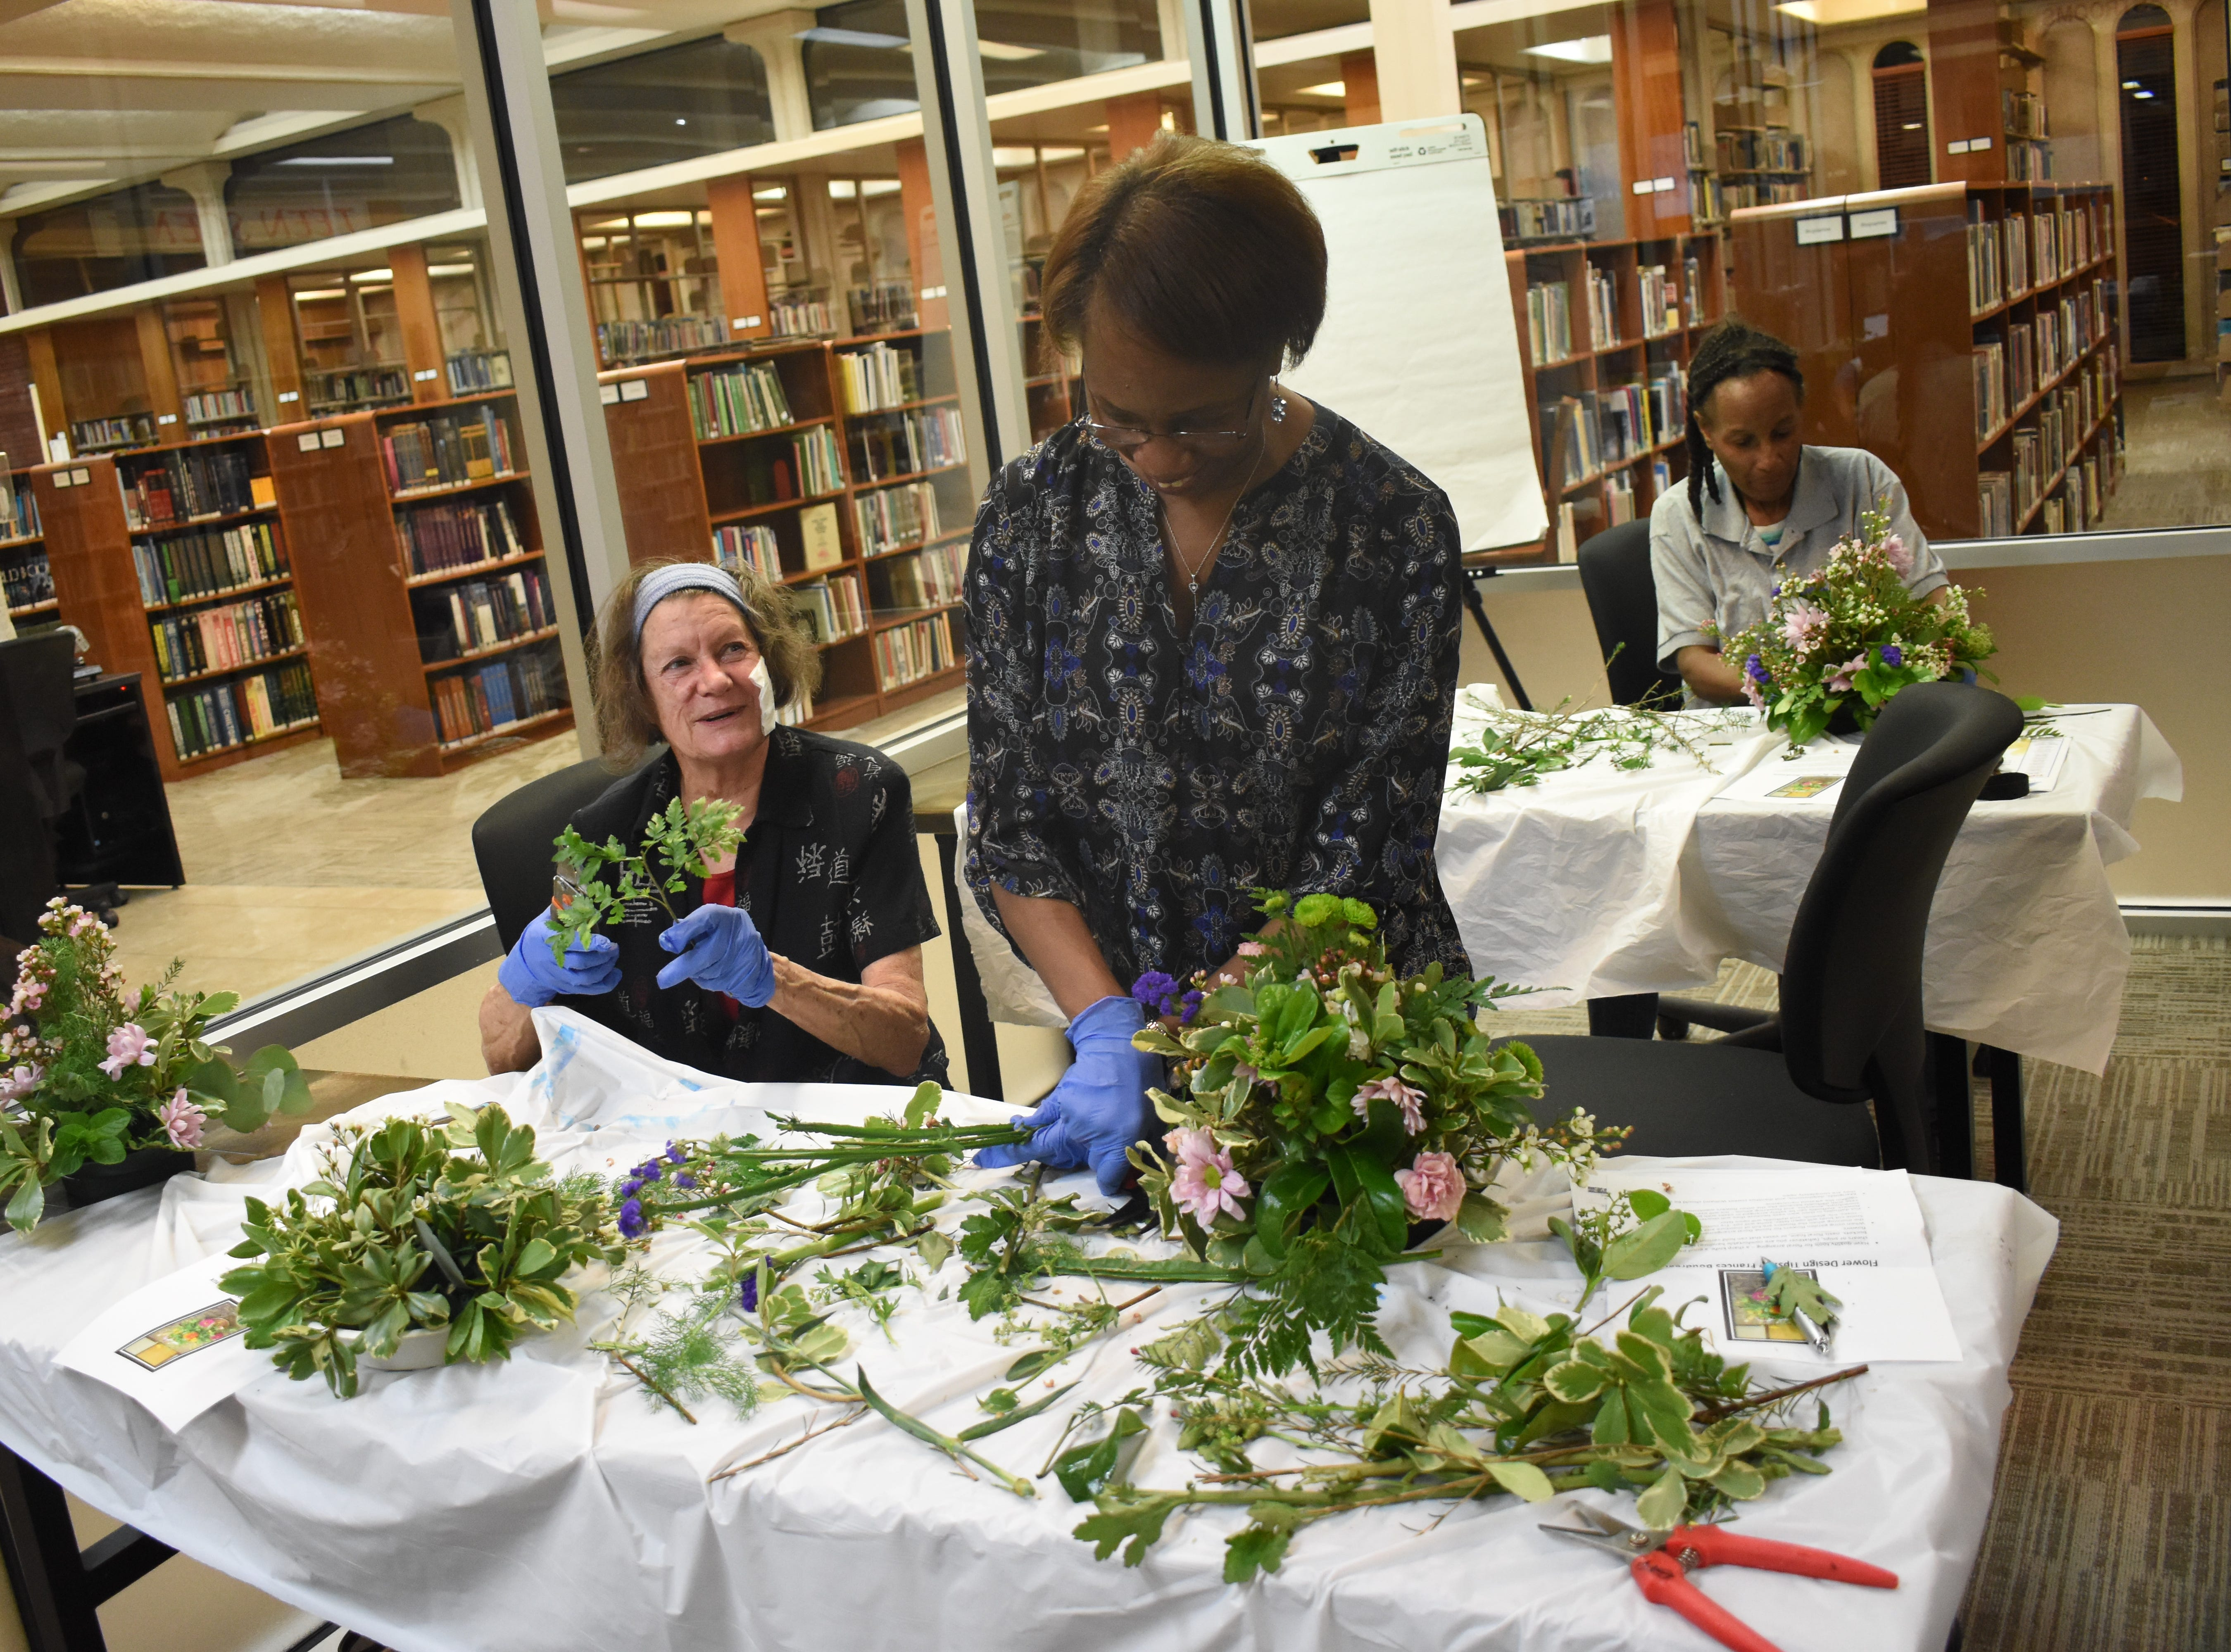 "Pam Glass (left) and Ameli Washington work on flower arraignments in a class ""Flowers For Your Sweetheart,"" taught by Frances Boudreaux, a licensed florist, at the Main Library of the Rapides Parish Library Wednesday, Feb. 6, 2019. Some of the tips Boudreaux told participants was to try various foliage to see what works best for them. She recommended cutting garden flowers in the morning when flowers are full of moisture and the are is cooler. Flowers such as roses, iris, gladioli can be cut as buds and may open later. Marigolds, delphiniums and dianthus or sweet William, must be cut with they are open. Some of the common foliage that were used in the arrangements that can be found in Central Louisiana are pittosporum, either variegated or solid green; baker's fern or leather leaf; sweet viburnum, sweet olive, rosemary, ginger, evergreen boughs, holly, aspidistra or iron plant, and herbs such as rosemary, lavender, mint, basil and lemon balm. 